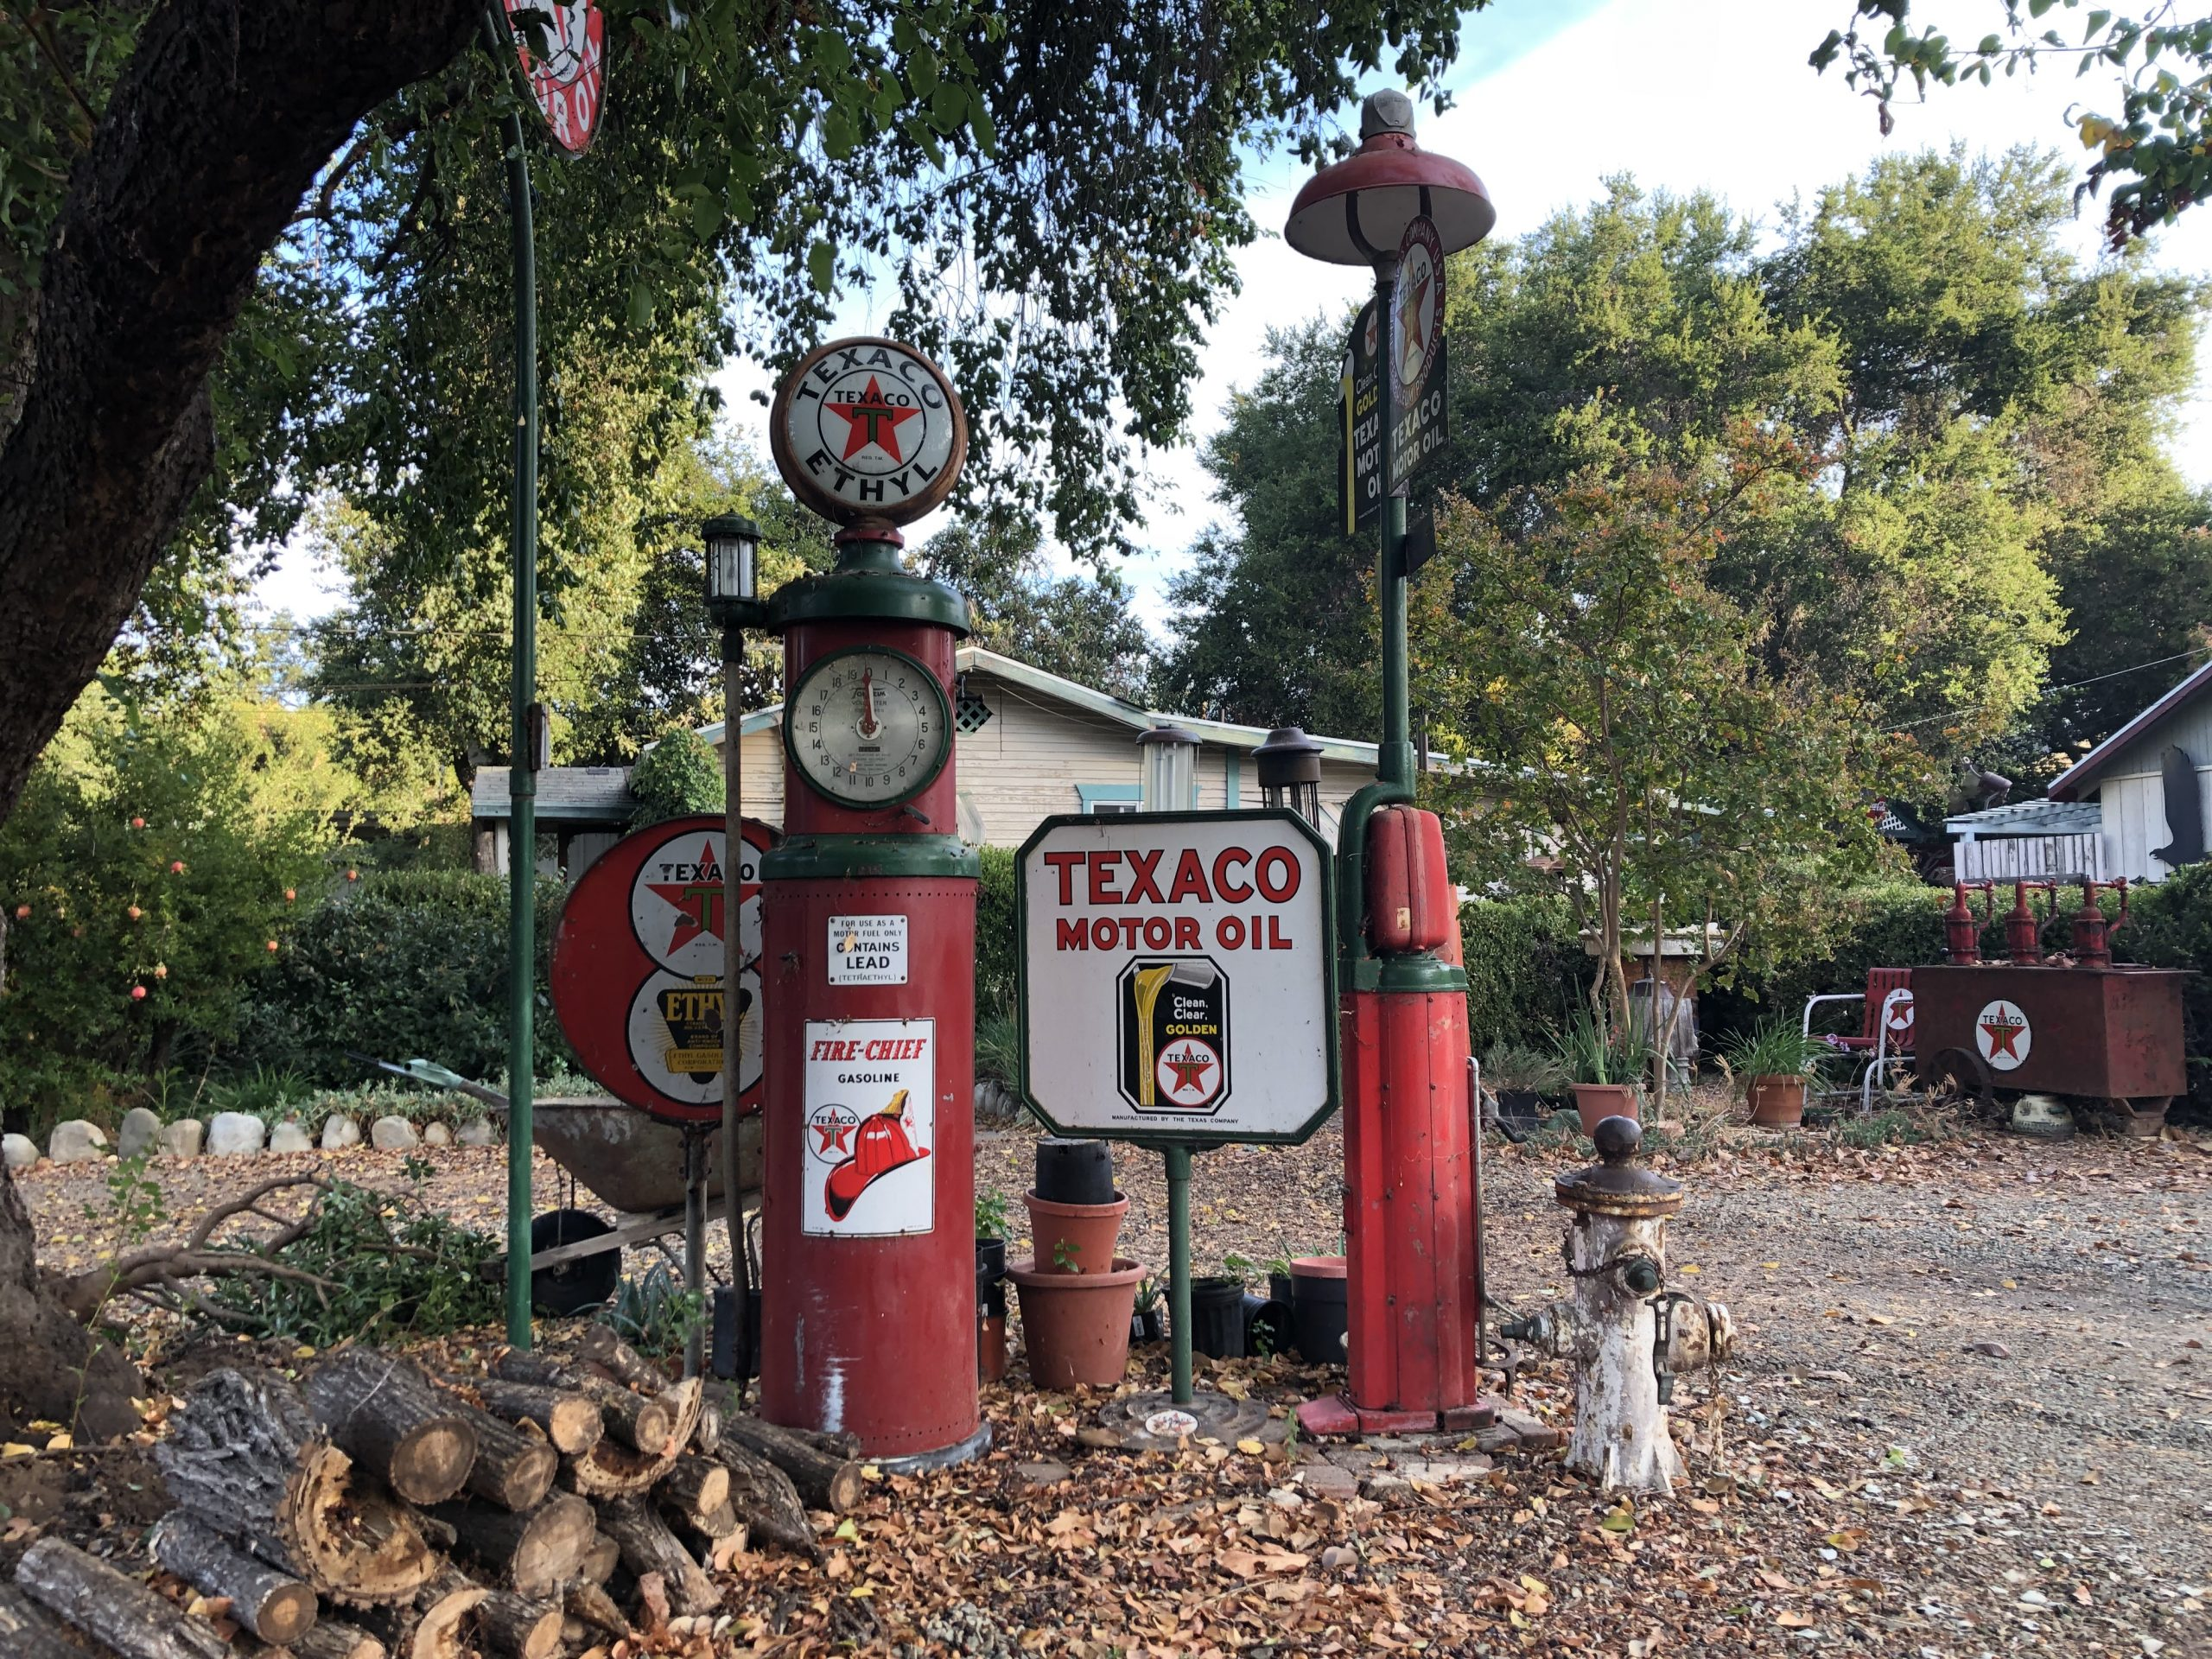 vintage texaco motor oil pumps and signs